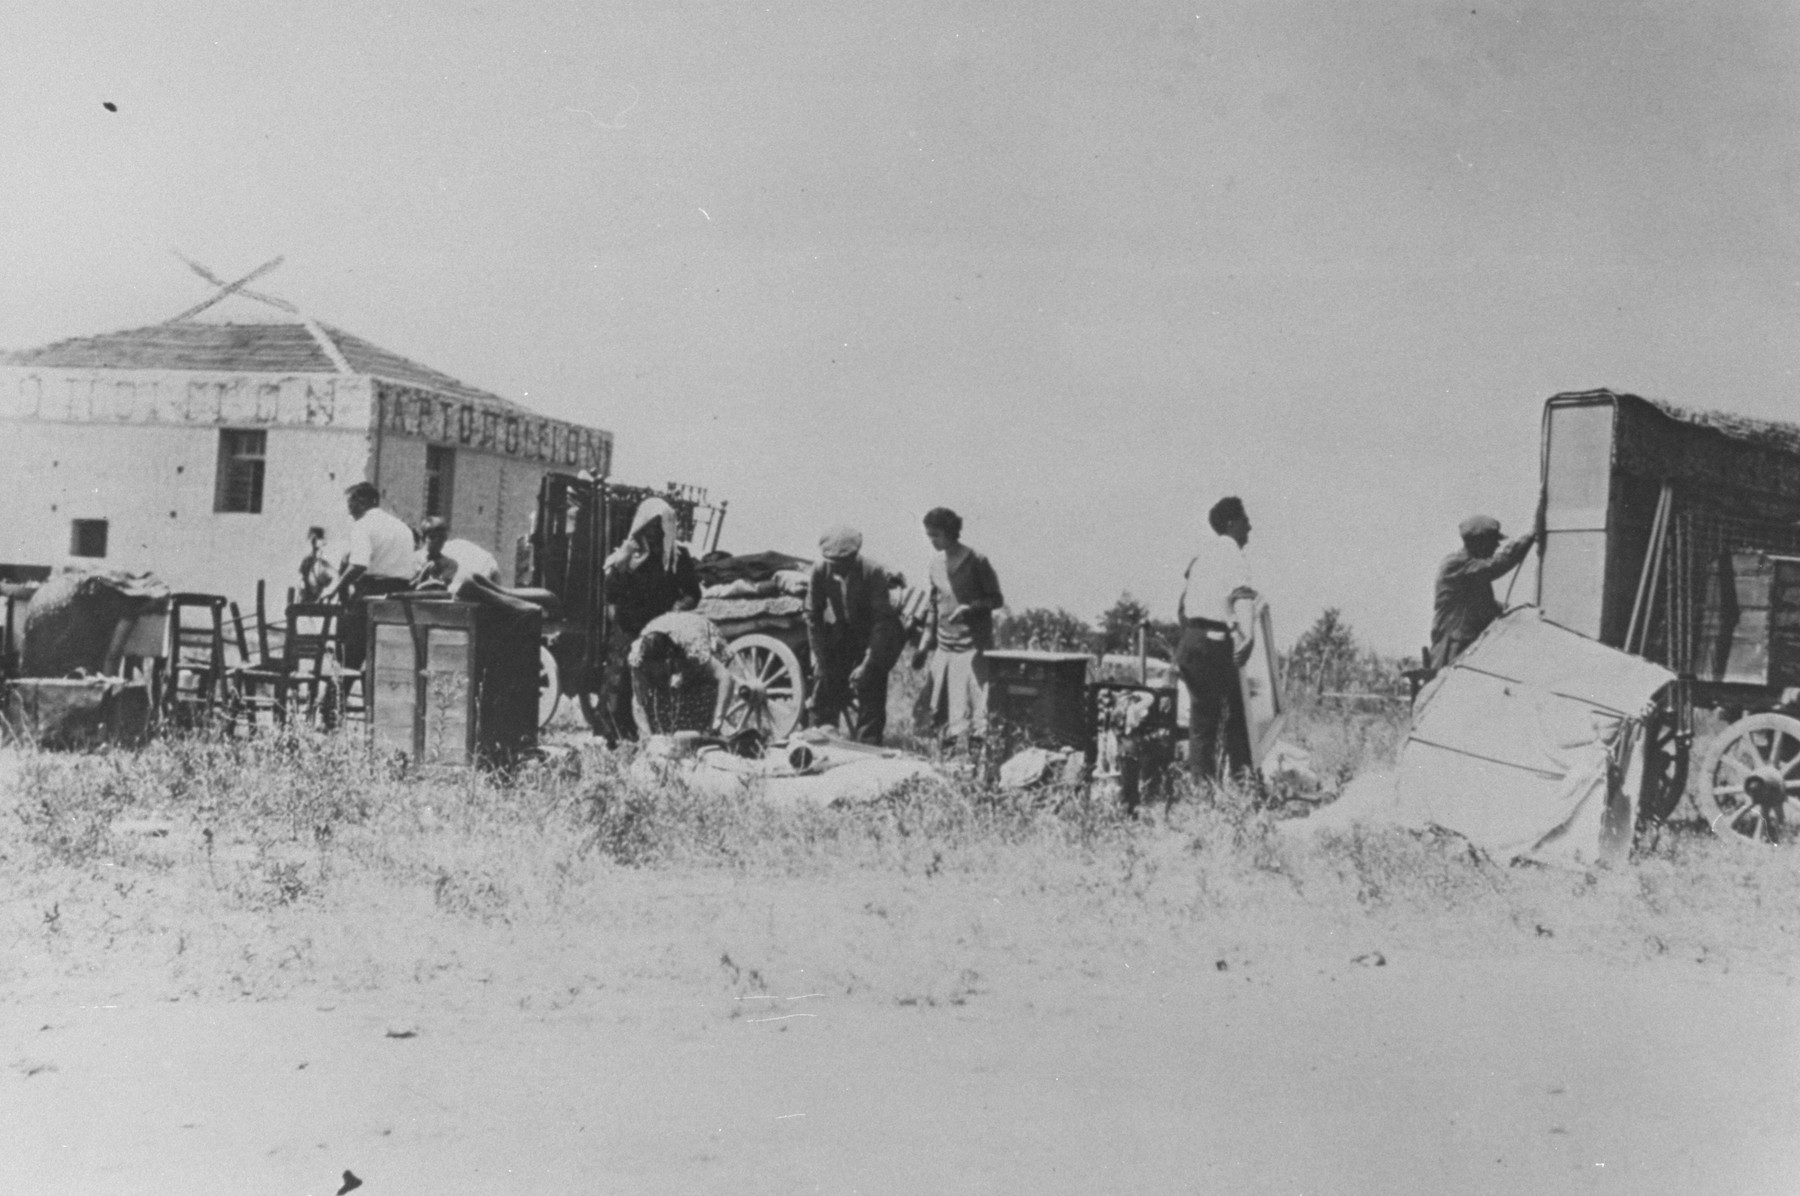 Jews evacuate Camp Campbell after the pogrom of June 29, 1931.